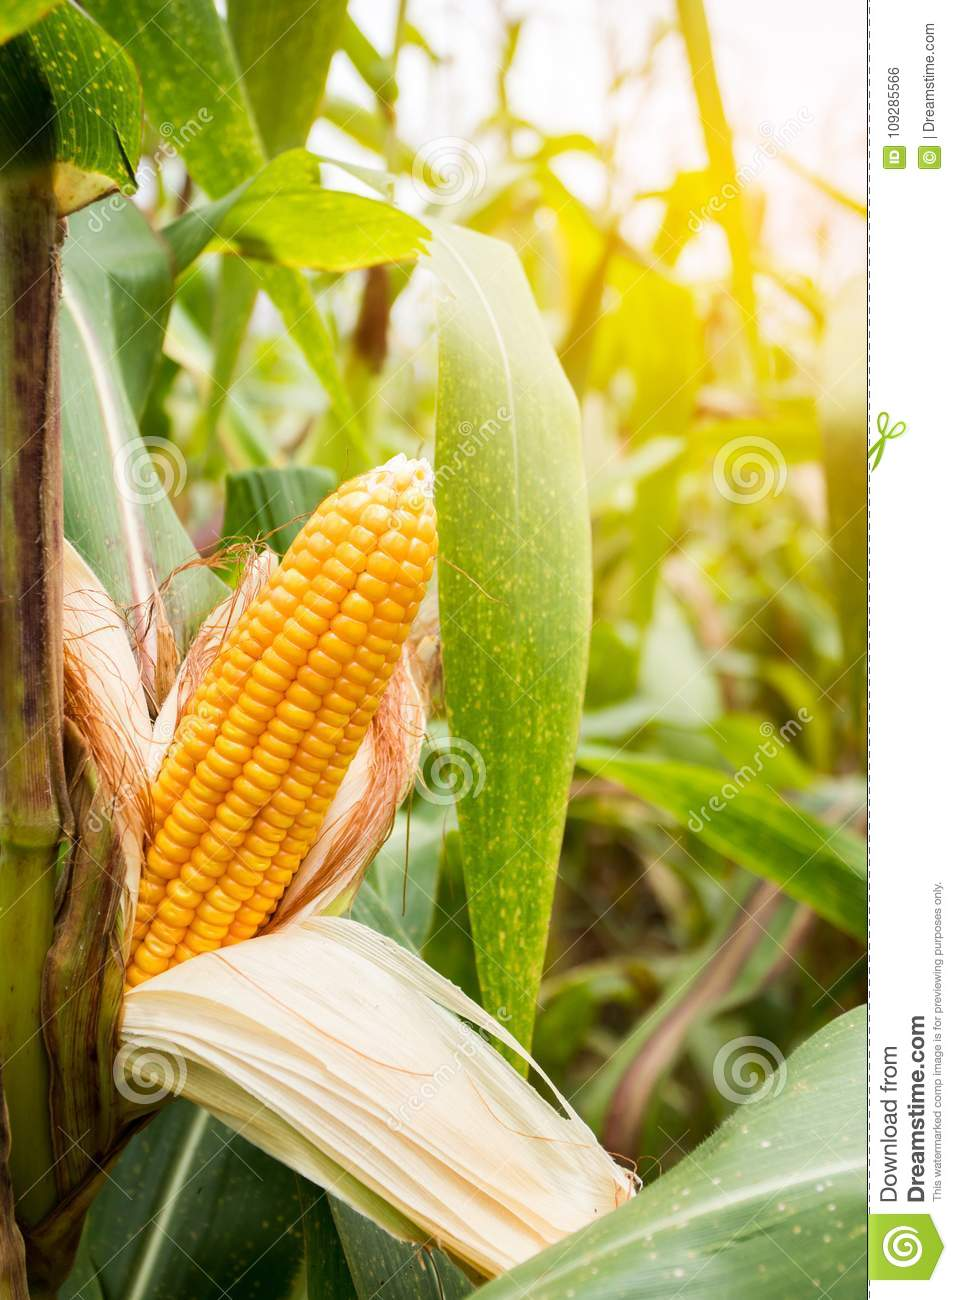 How long does sweetcorn take to mature